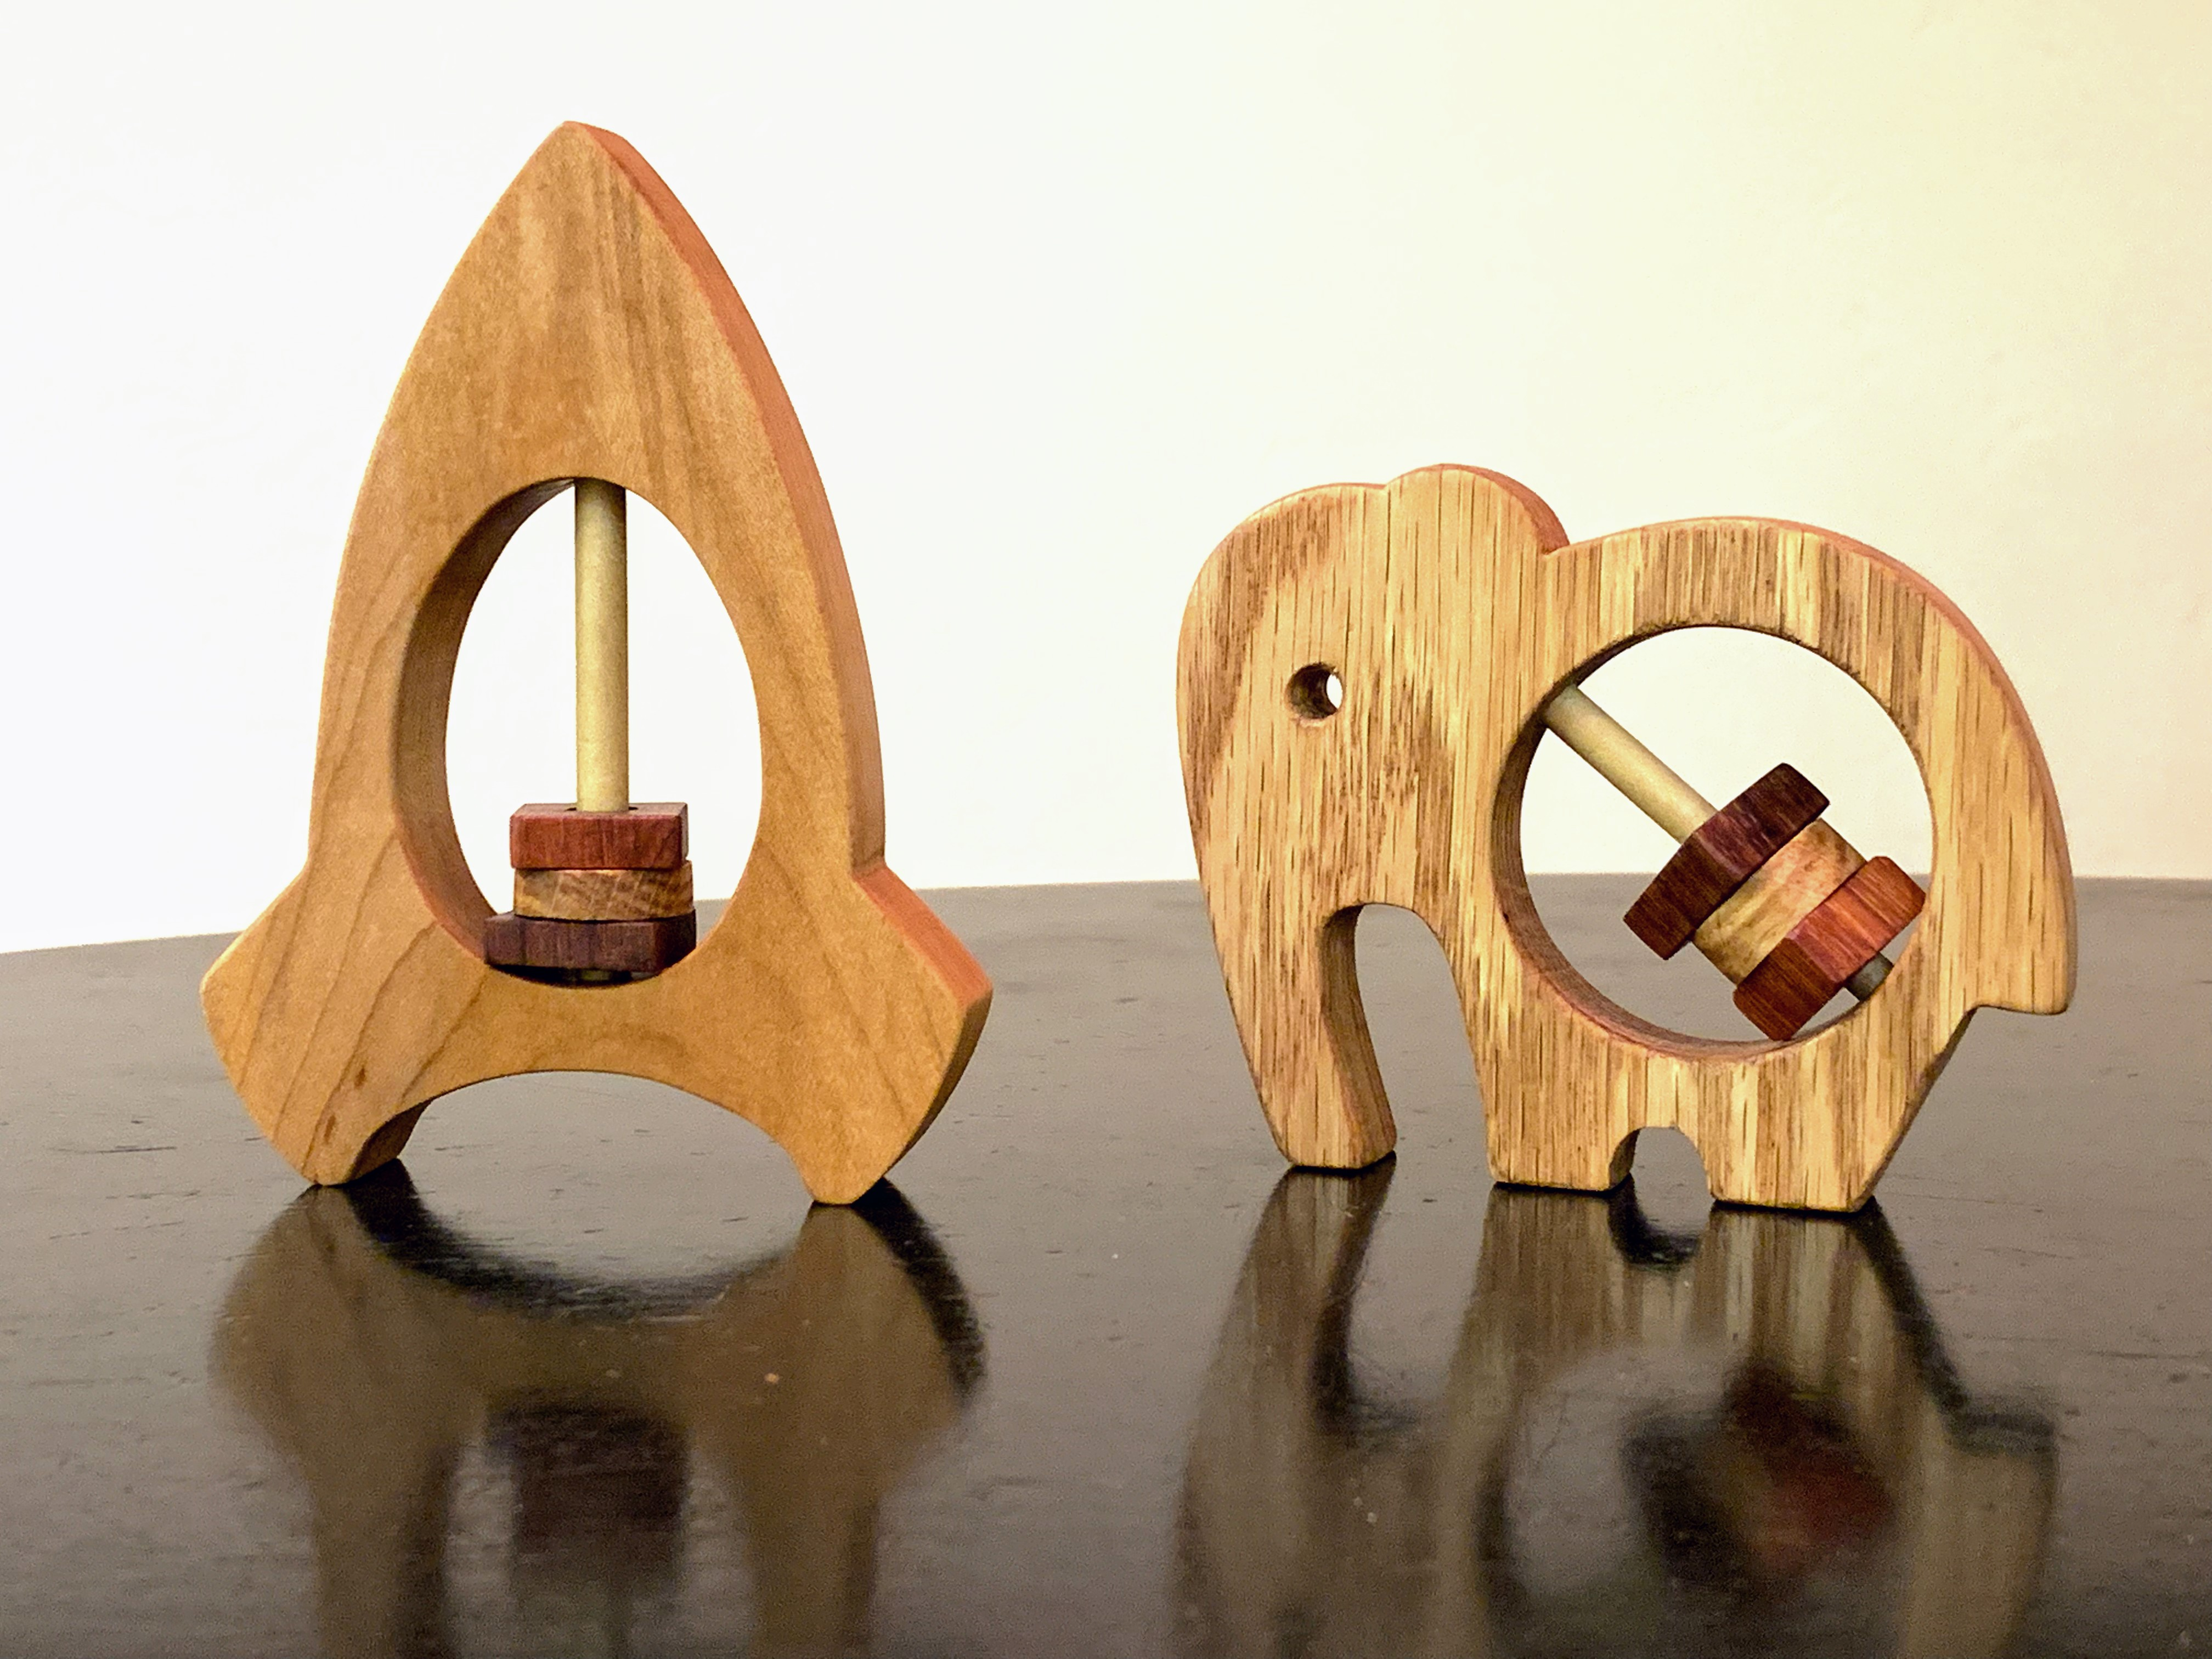 How to Make a Wooden Baby Rattle